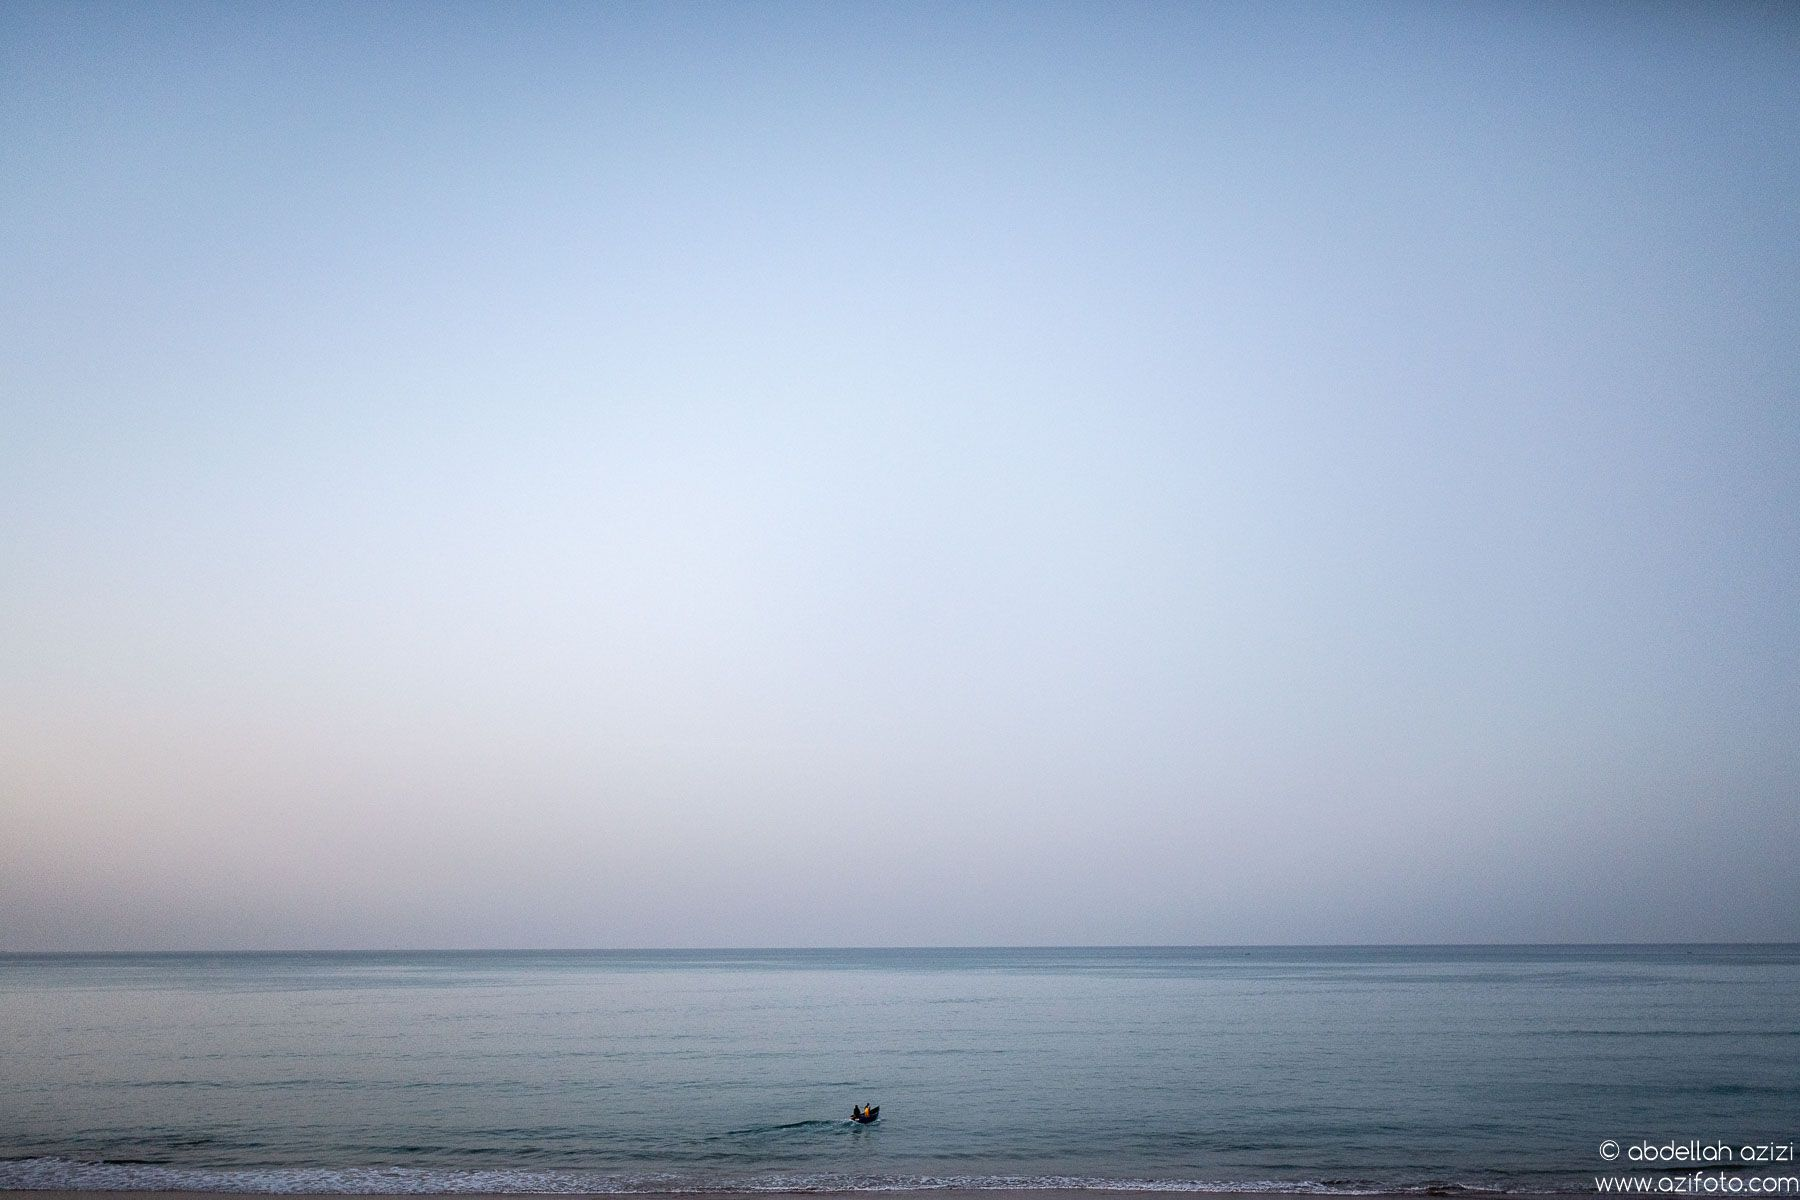 Fishing boat going to the ocean, Taghazout village, Morocco